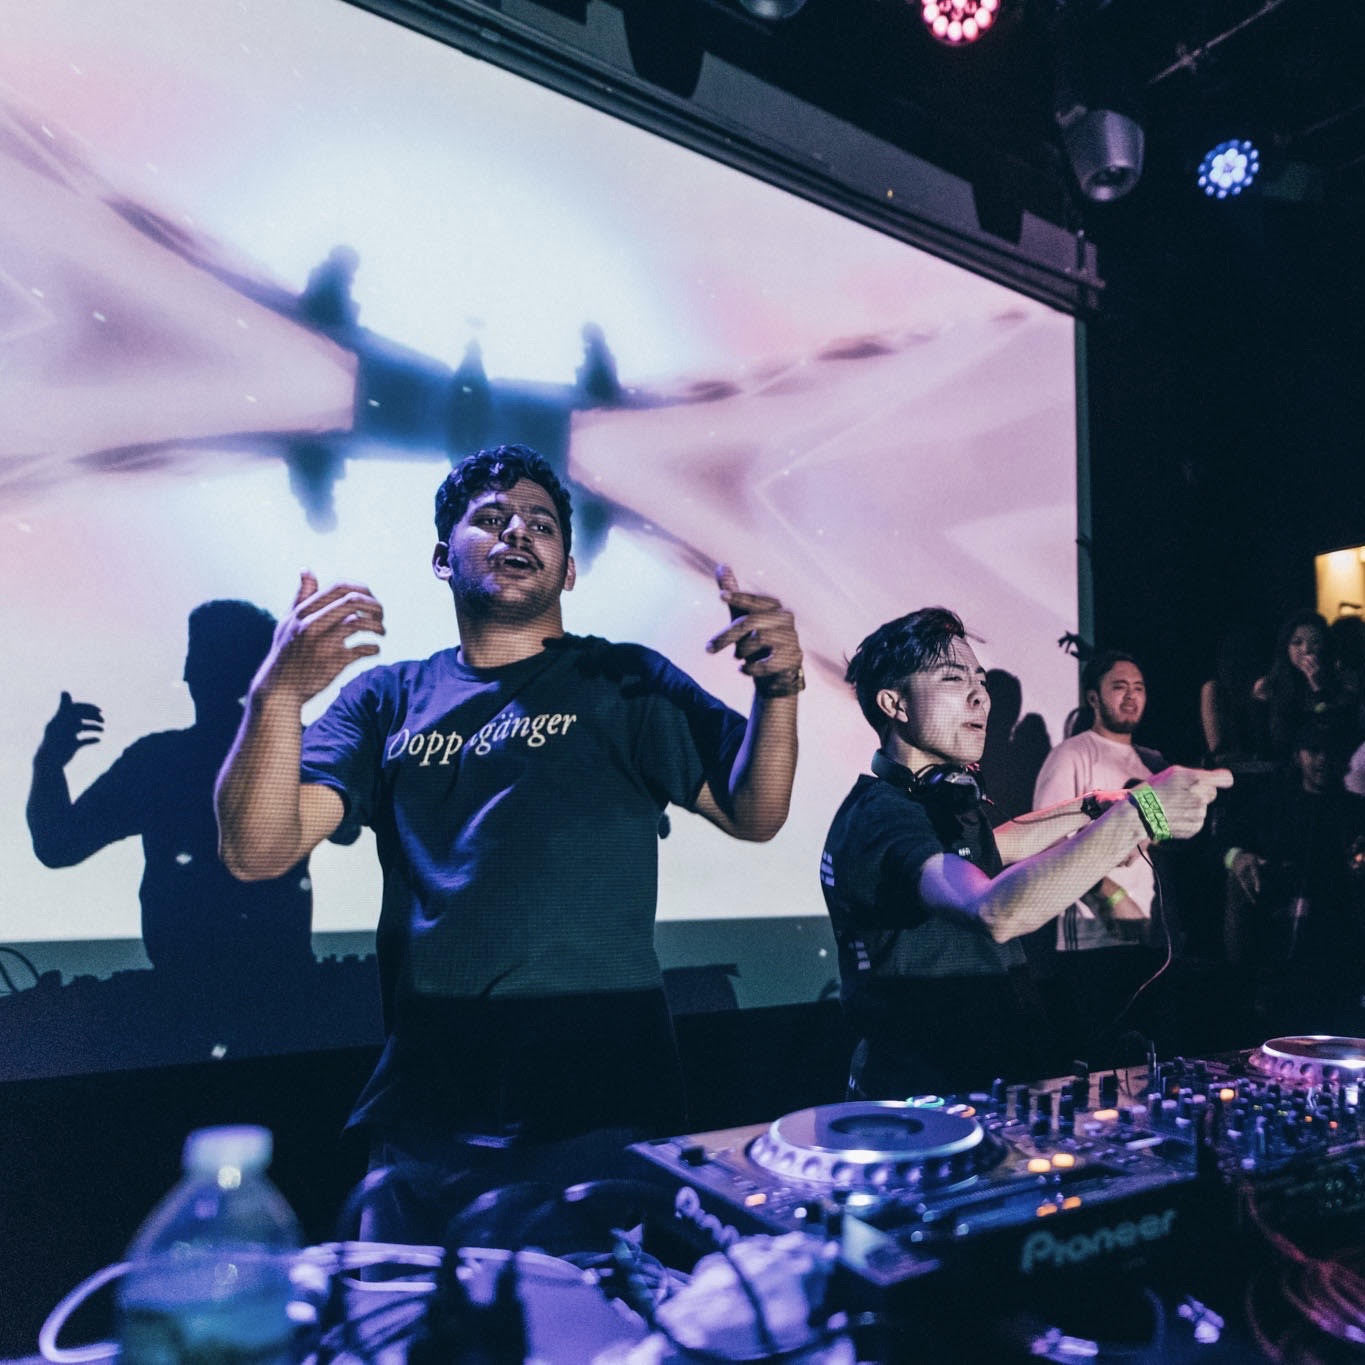 Hotel Garuda Throws the Ultimate NYC Party in an iEDM Exclusive